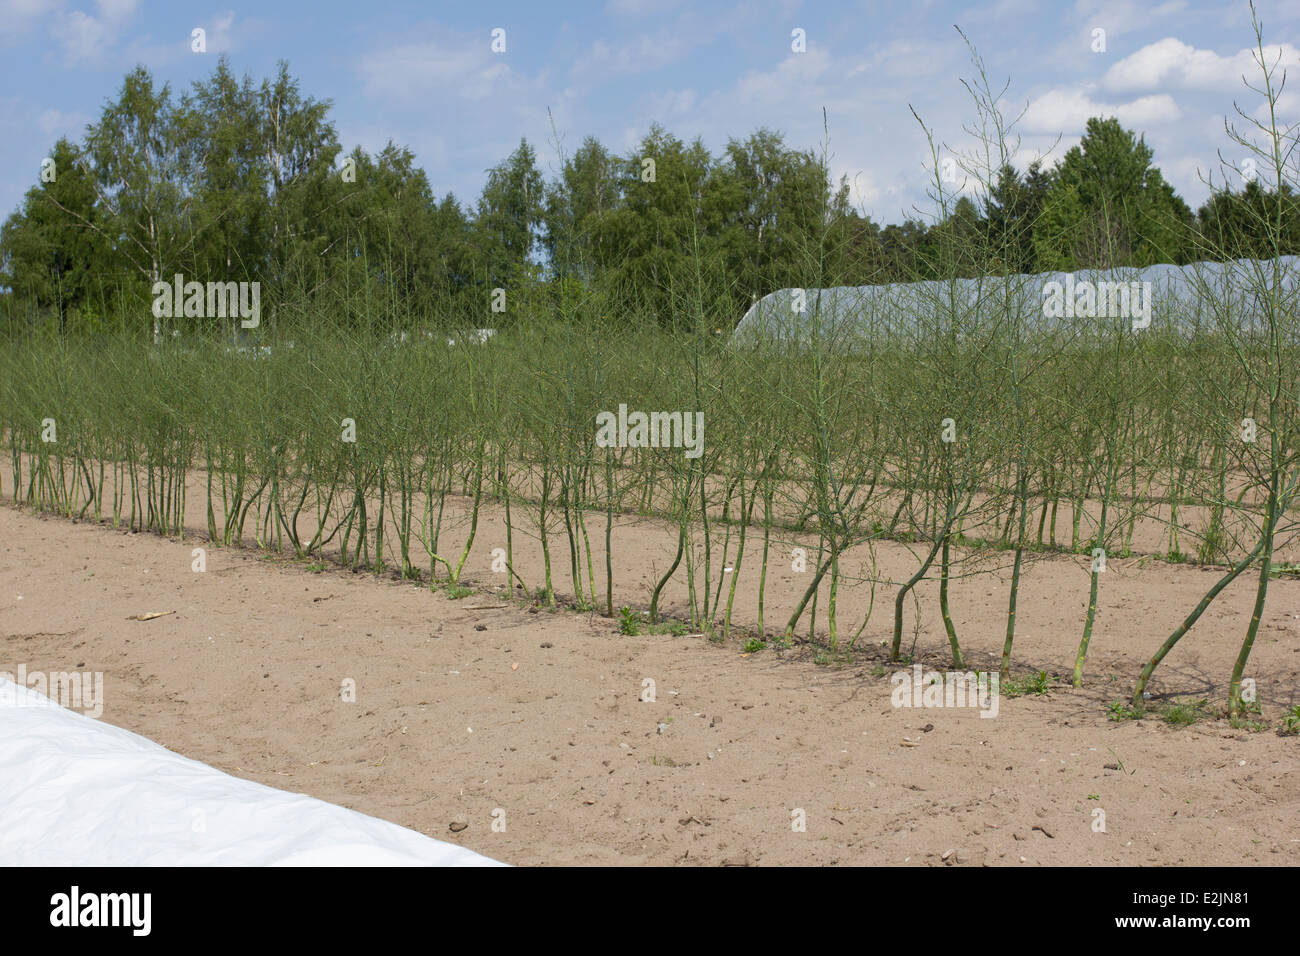 A field of organic green asparagus plants growing at Lilla Bjers farm in Gotland, Sweden Stock Photo